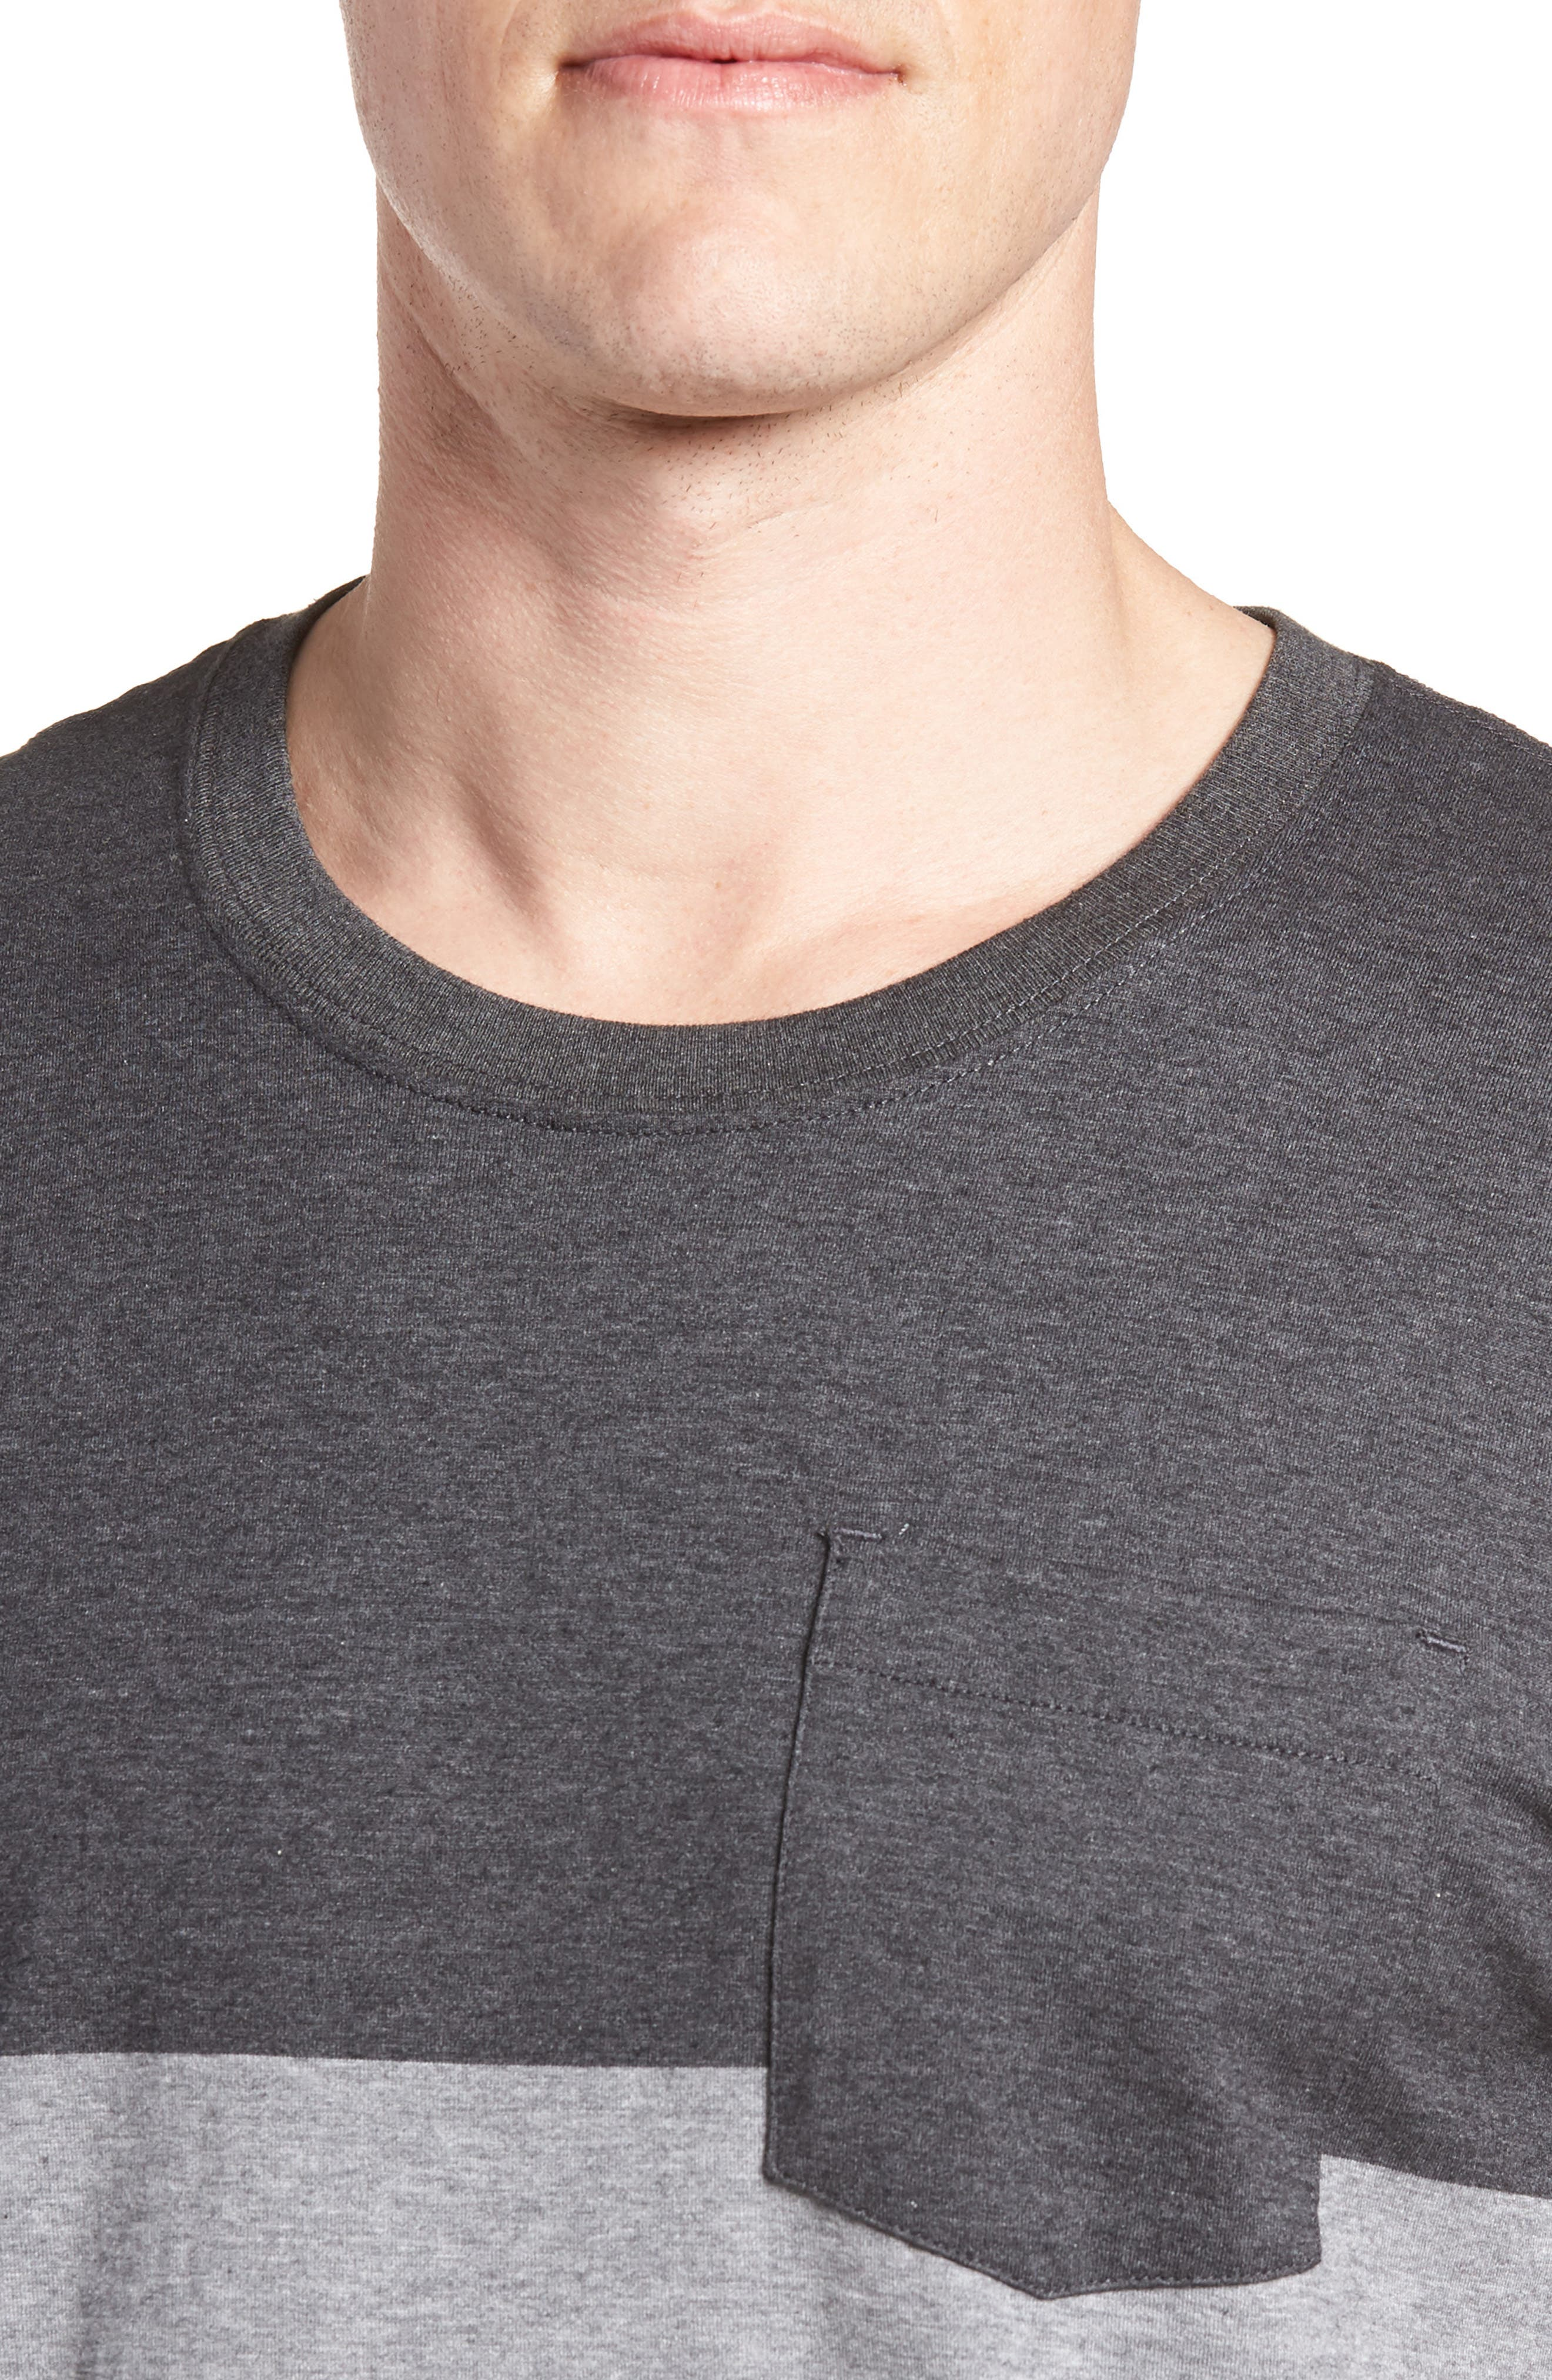 Kramp Colorblock Pocket T-Shirt,                             Alternate thumbnail 4, color,                             Heather Grey Pinstripe